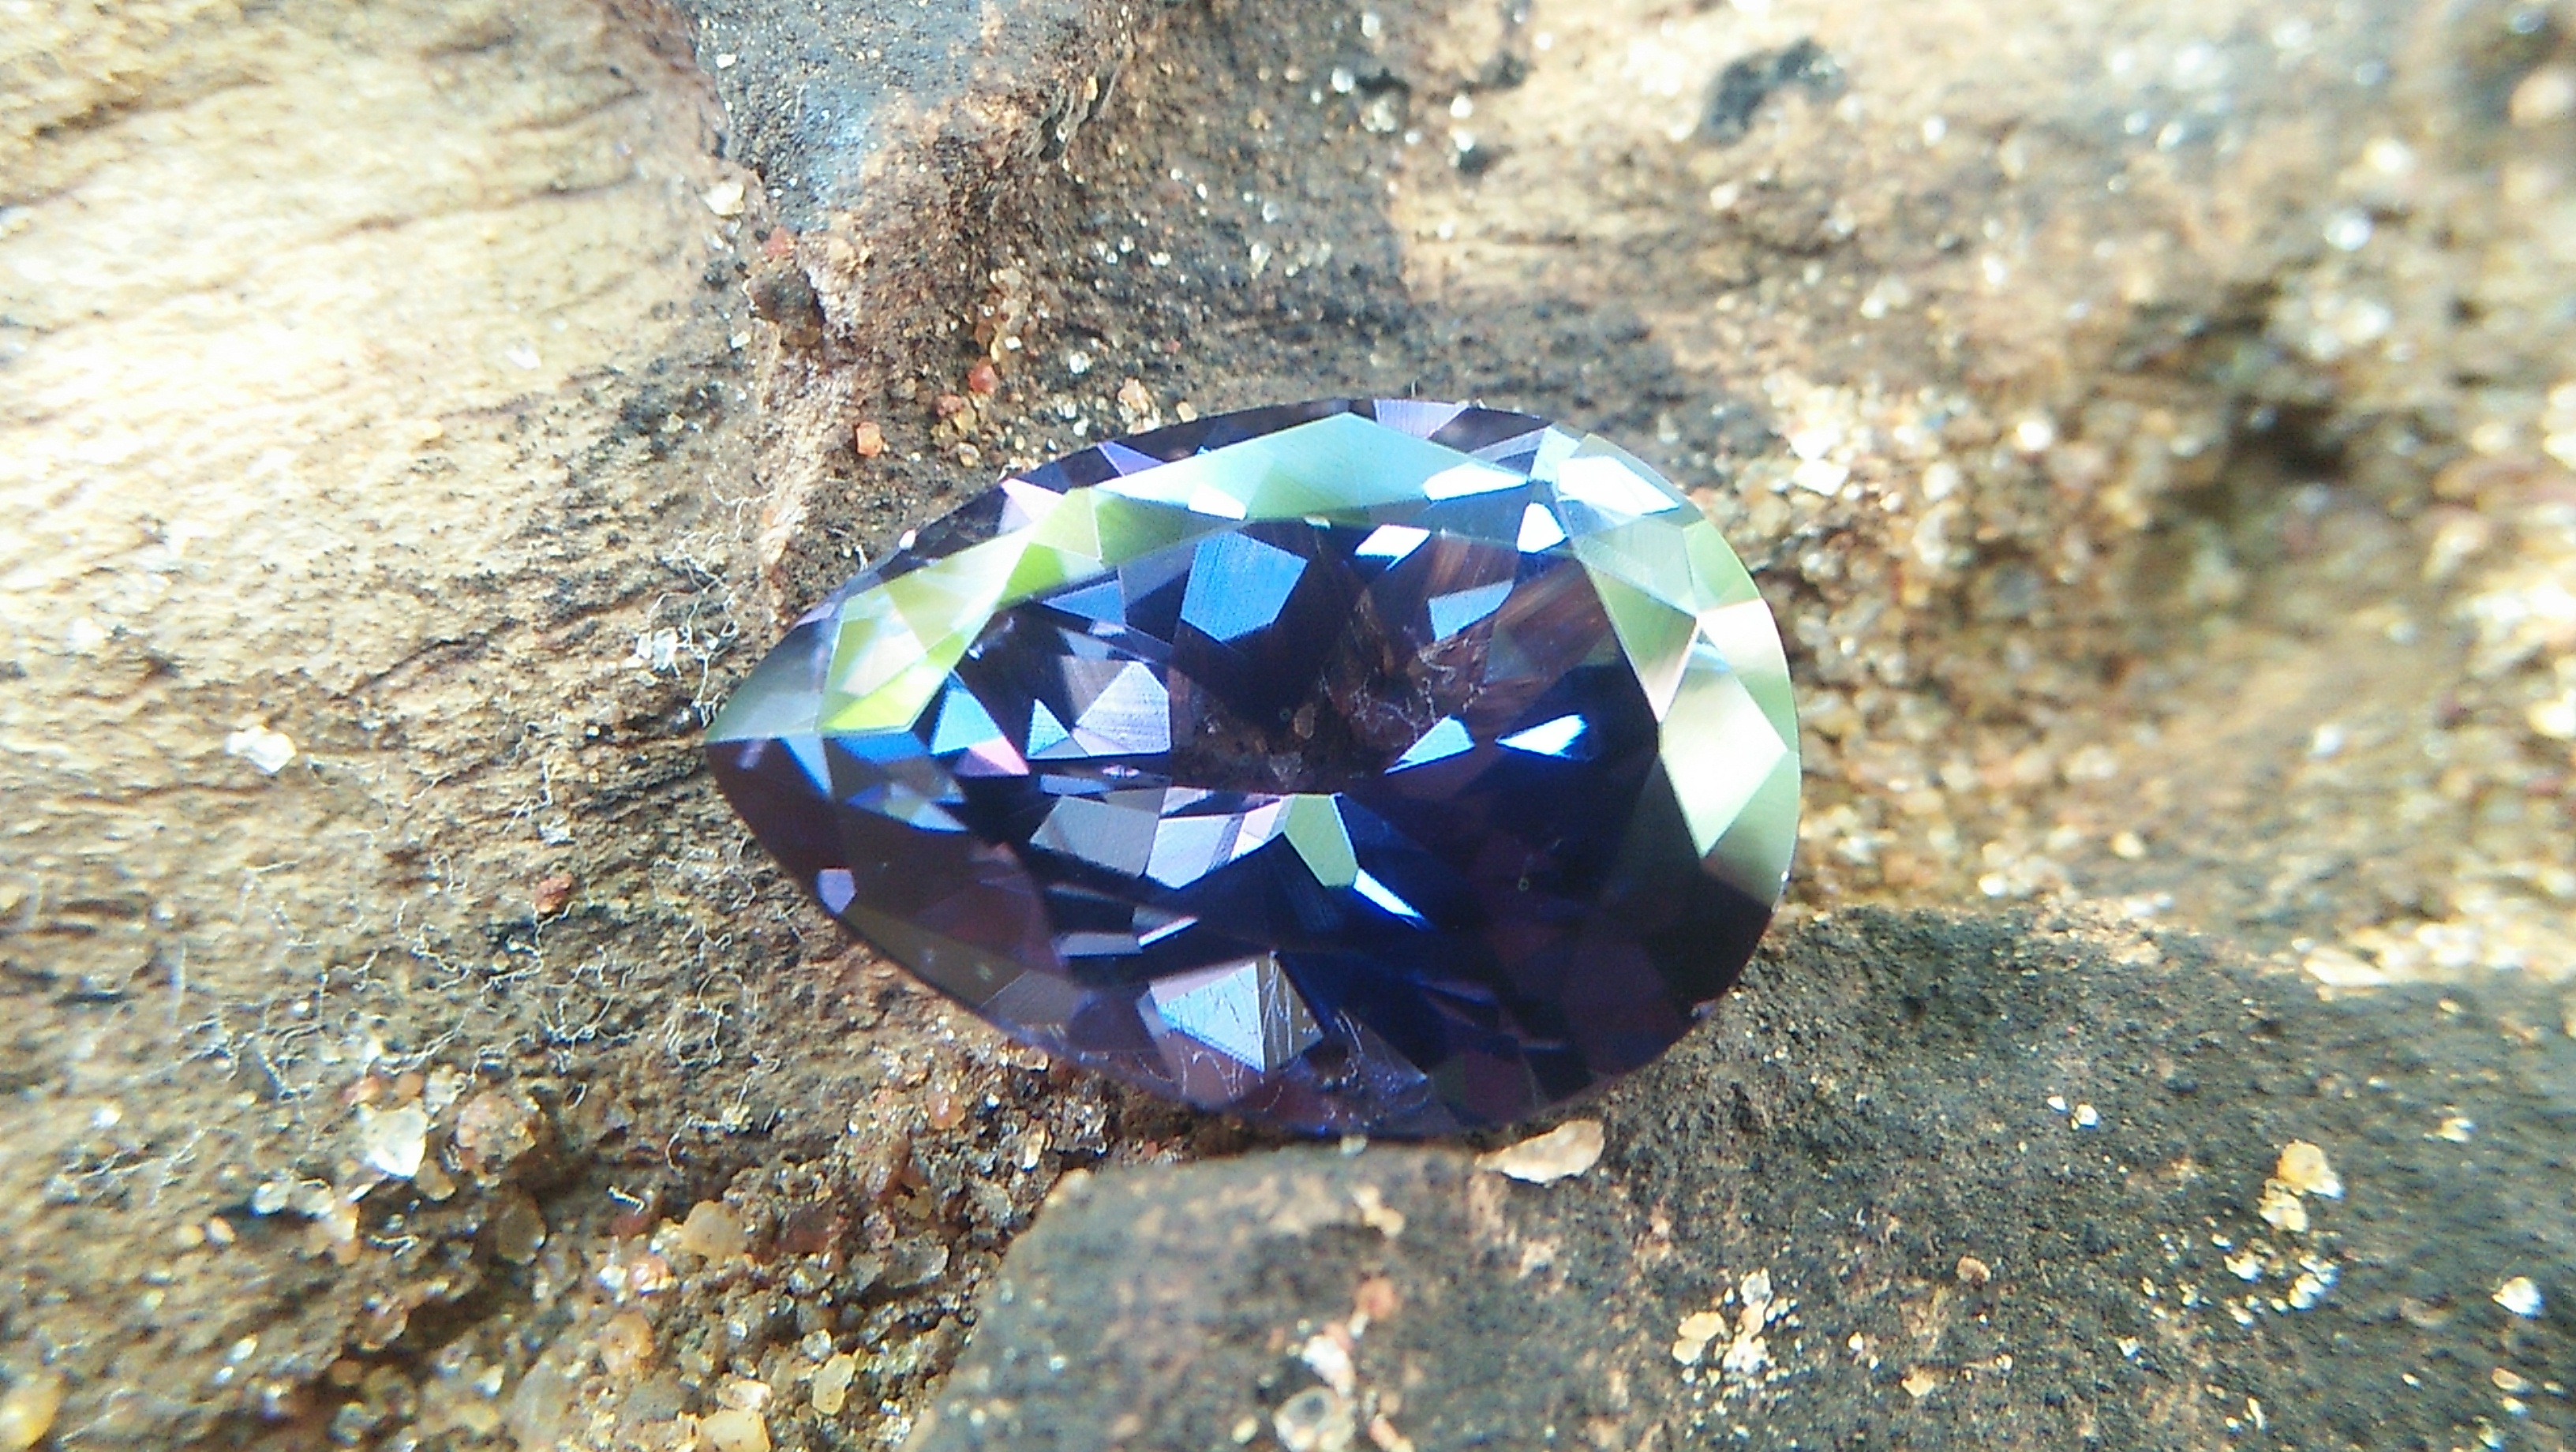 NATURAL BLUE SPINEL Shape : Pear Clarity : Very Clean Treatment : Natural/Unheated Dimension : 10.8mm x 7.5mm x 4.9mm Weight : 2.50 Cts Location : City of Gem Ratnapura Sri Lanka